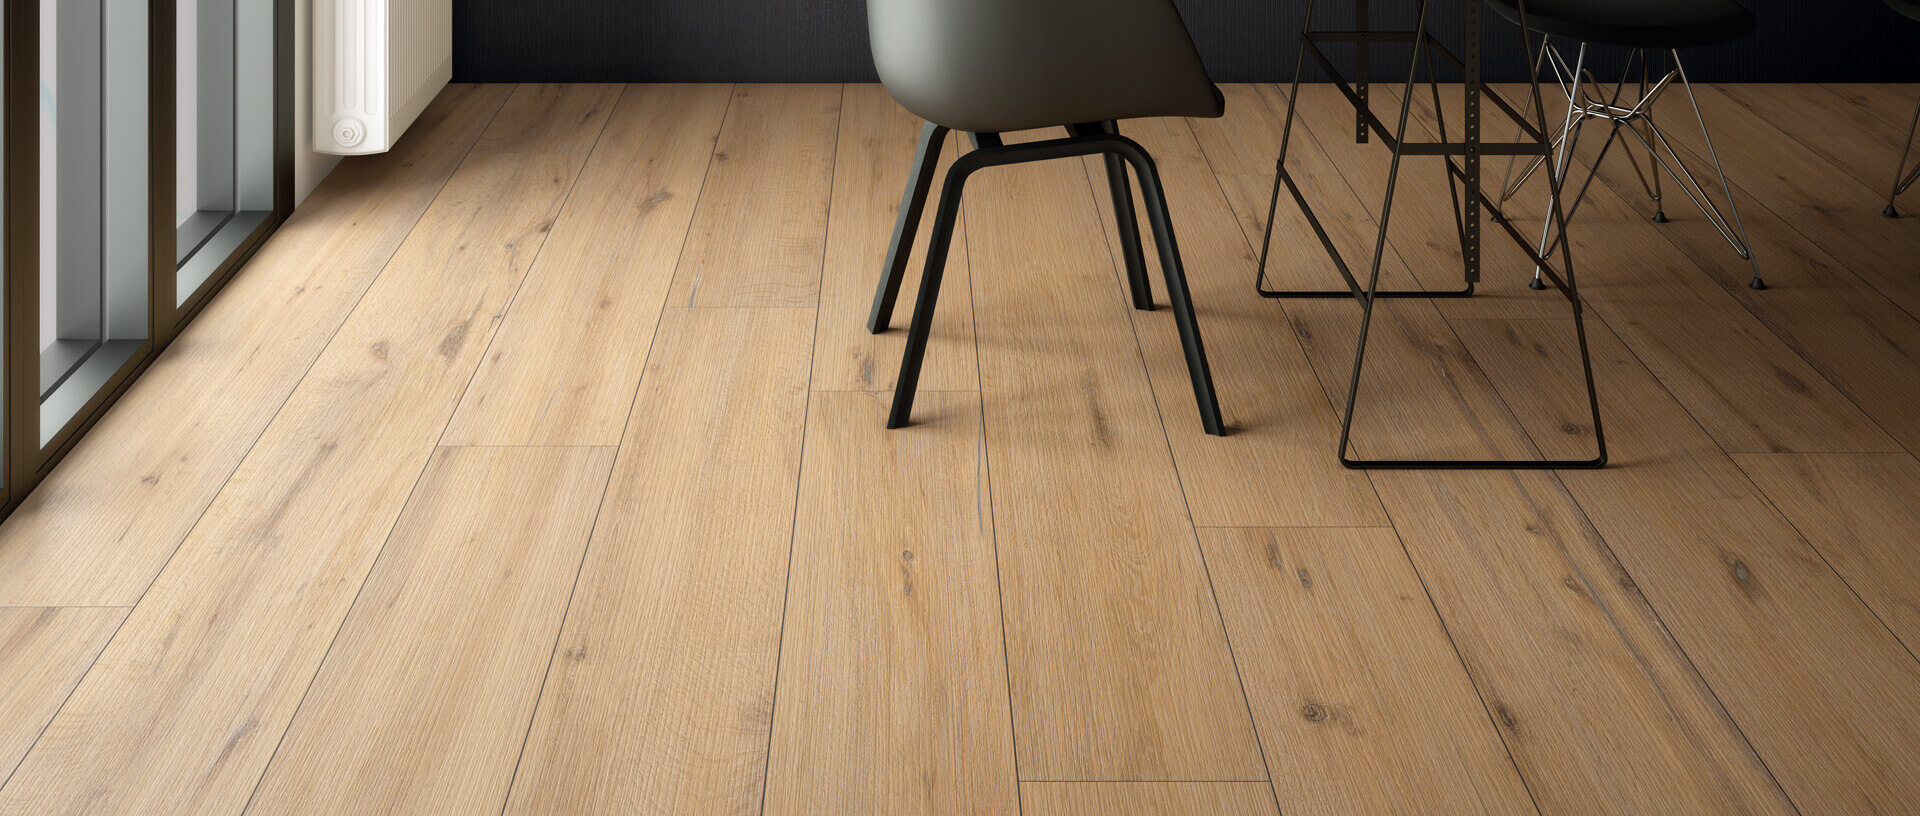 Wood Look Floor Tiles Brisbane Beste Awesome Inspiration